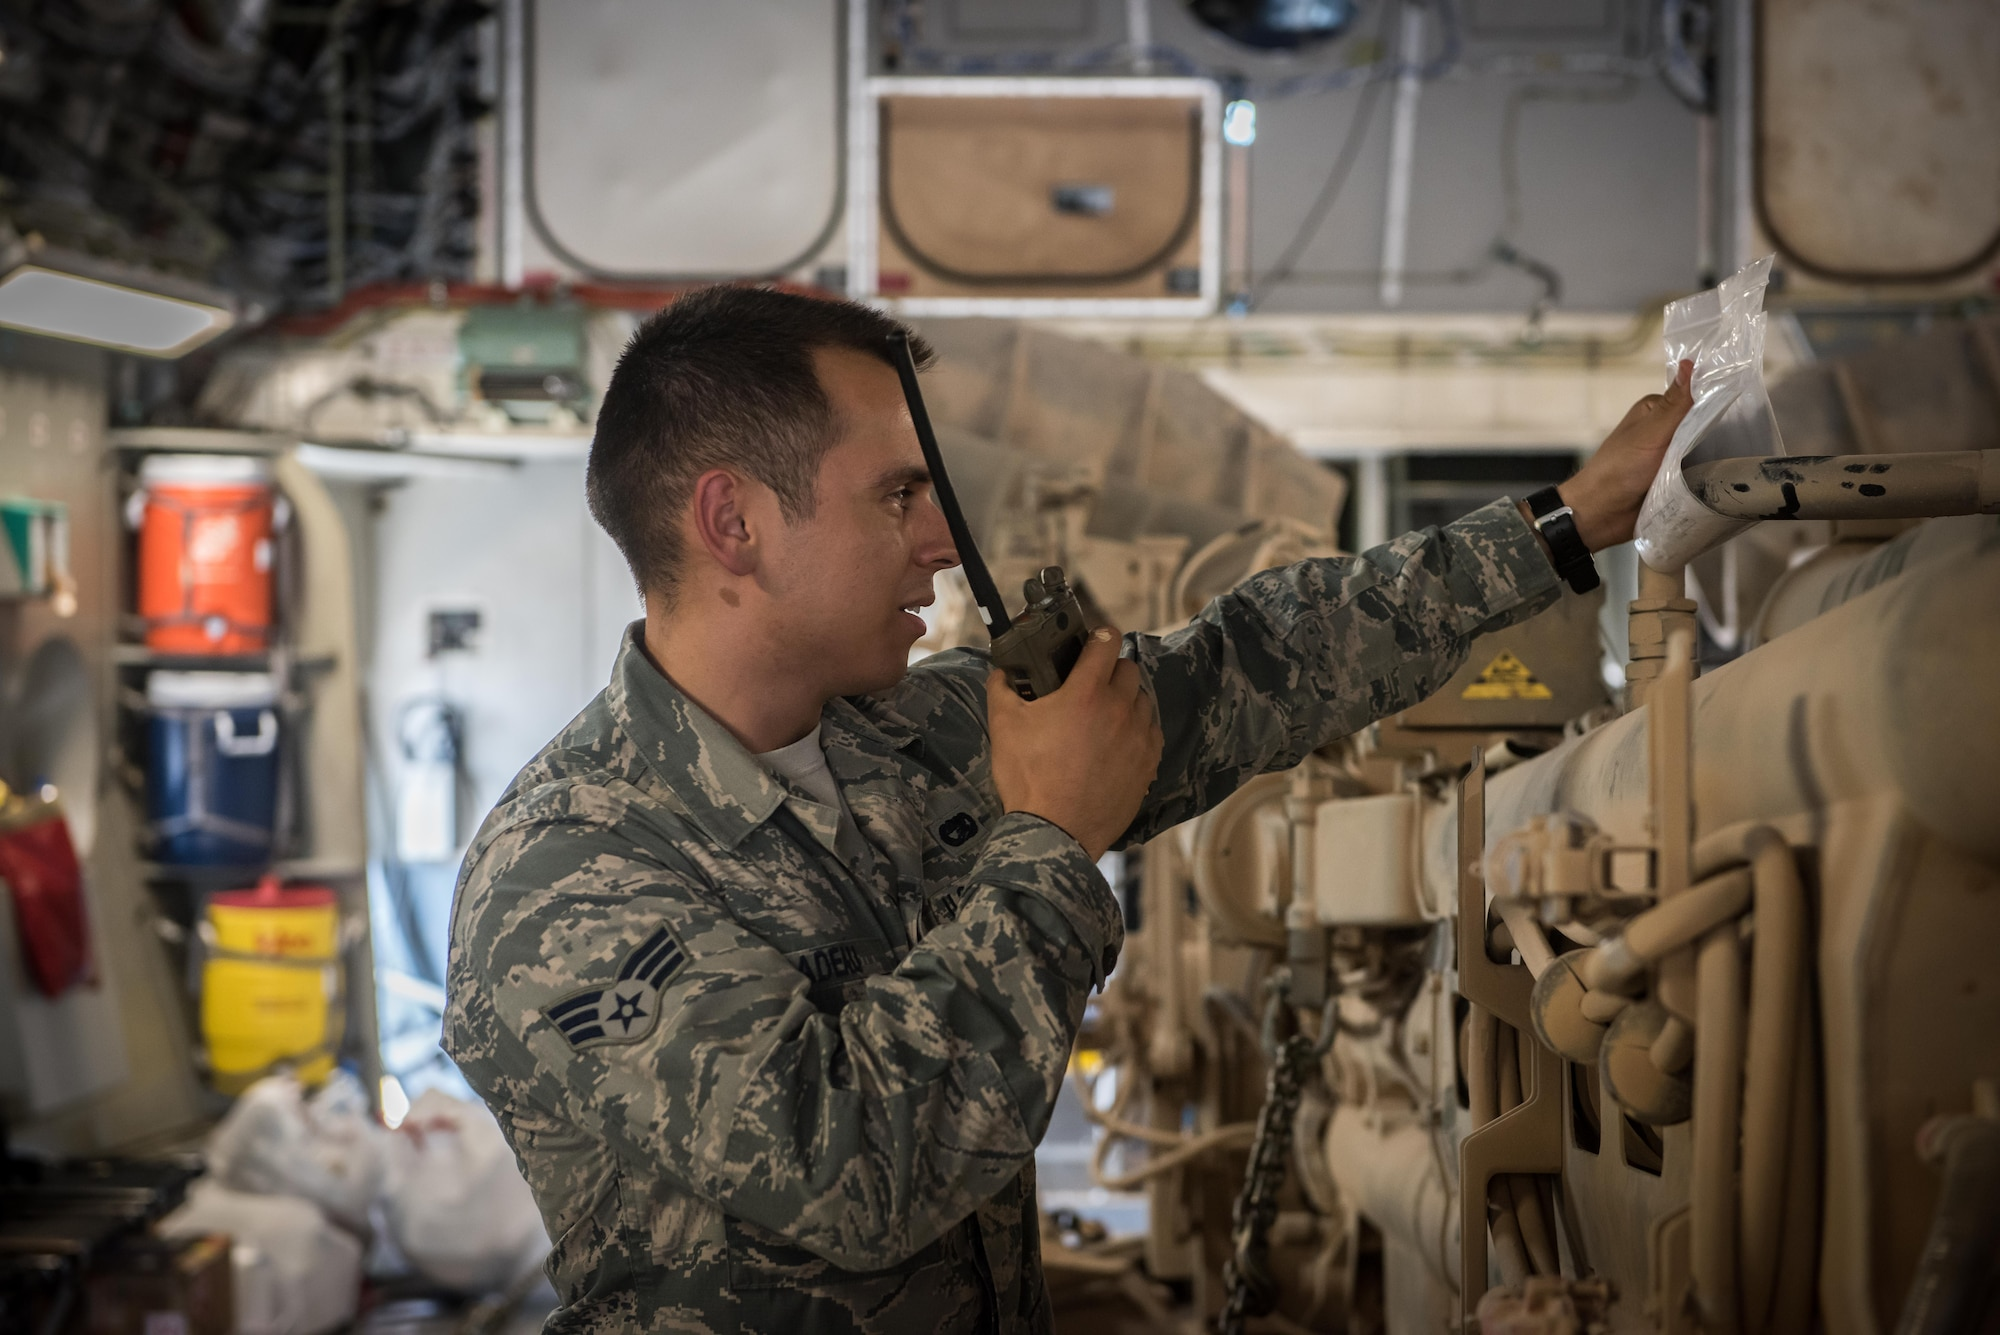 Senior Airman David Tiradeau, a ramp coordinator assigned to the 386th Expeditionary Logistics Readiness Squadron, relays information to the air terminal operations center, at an undisclosed location in Southwest Asia, August 15, 2017.